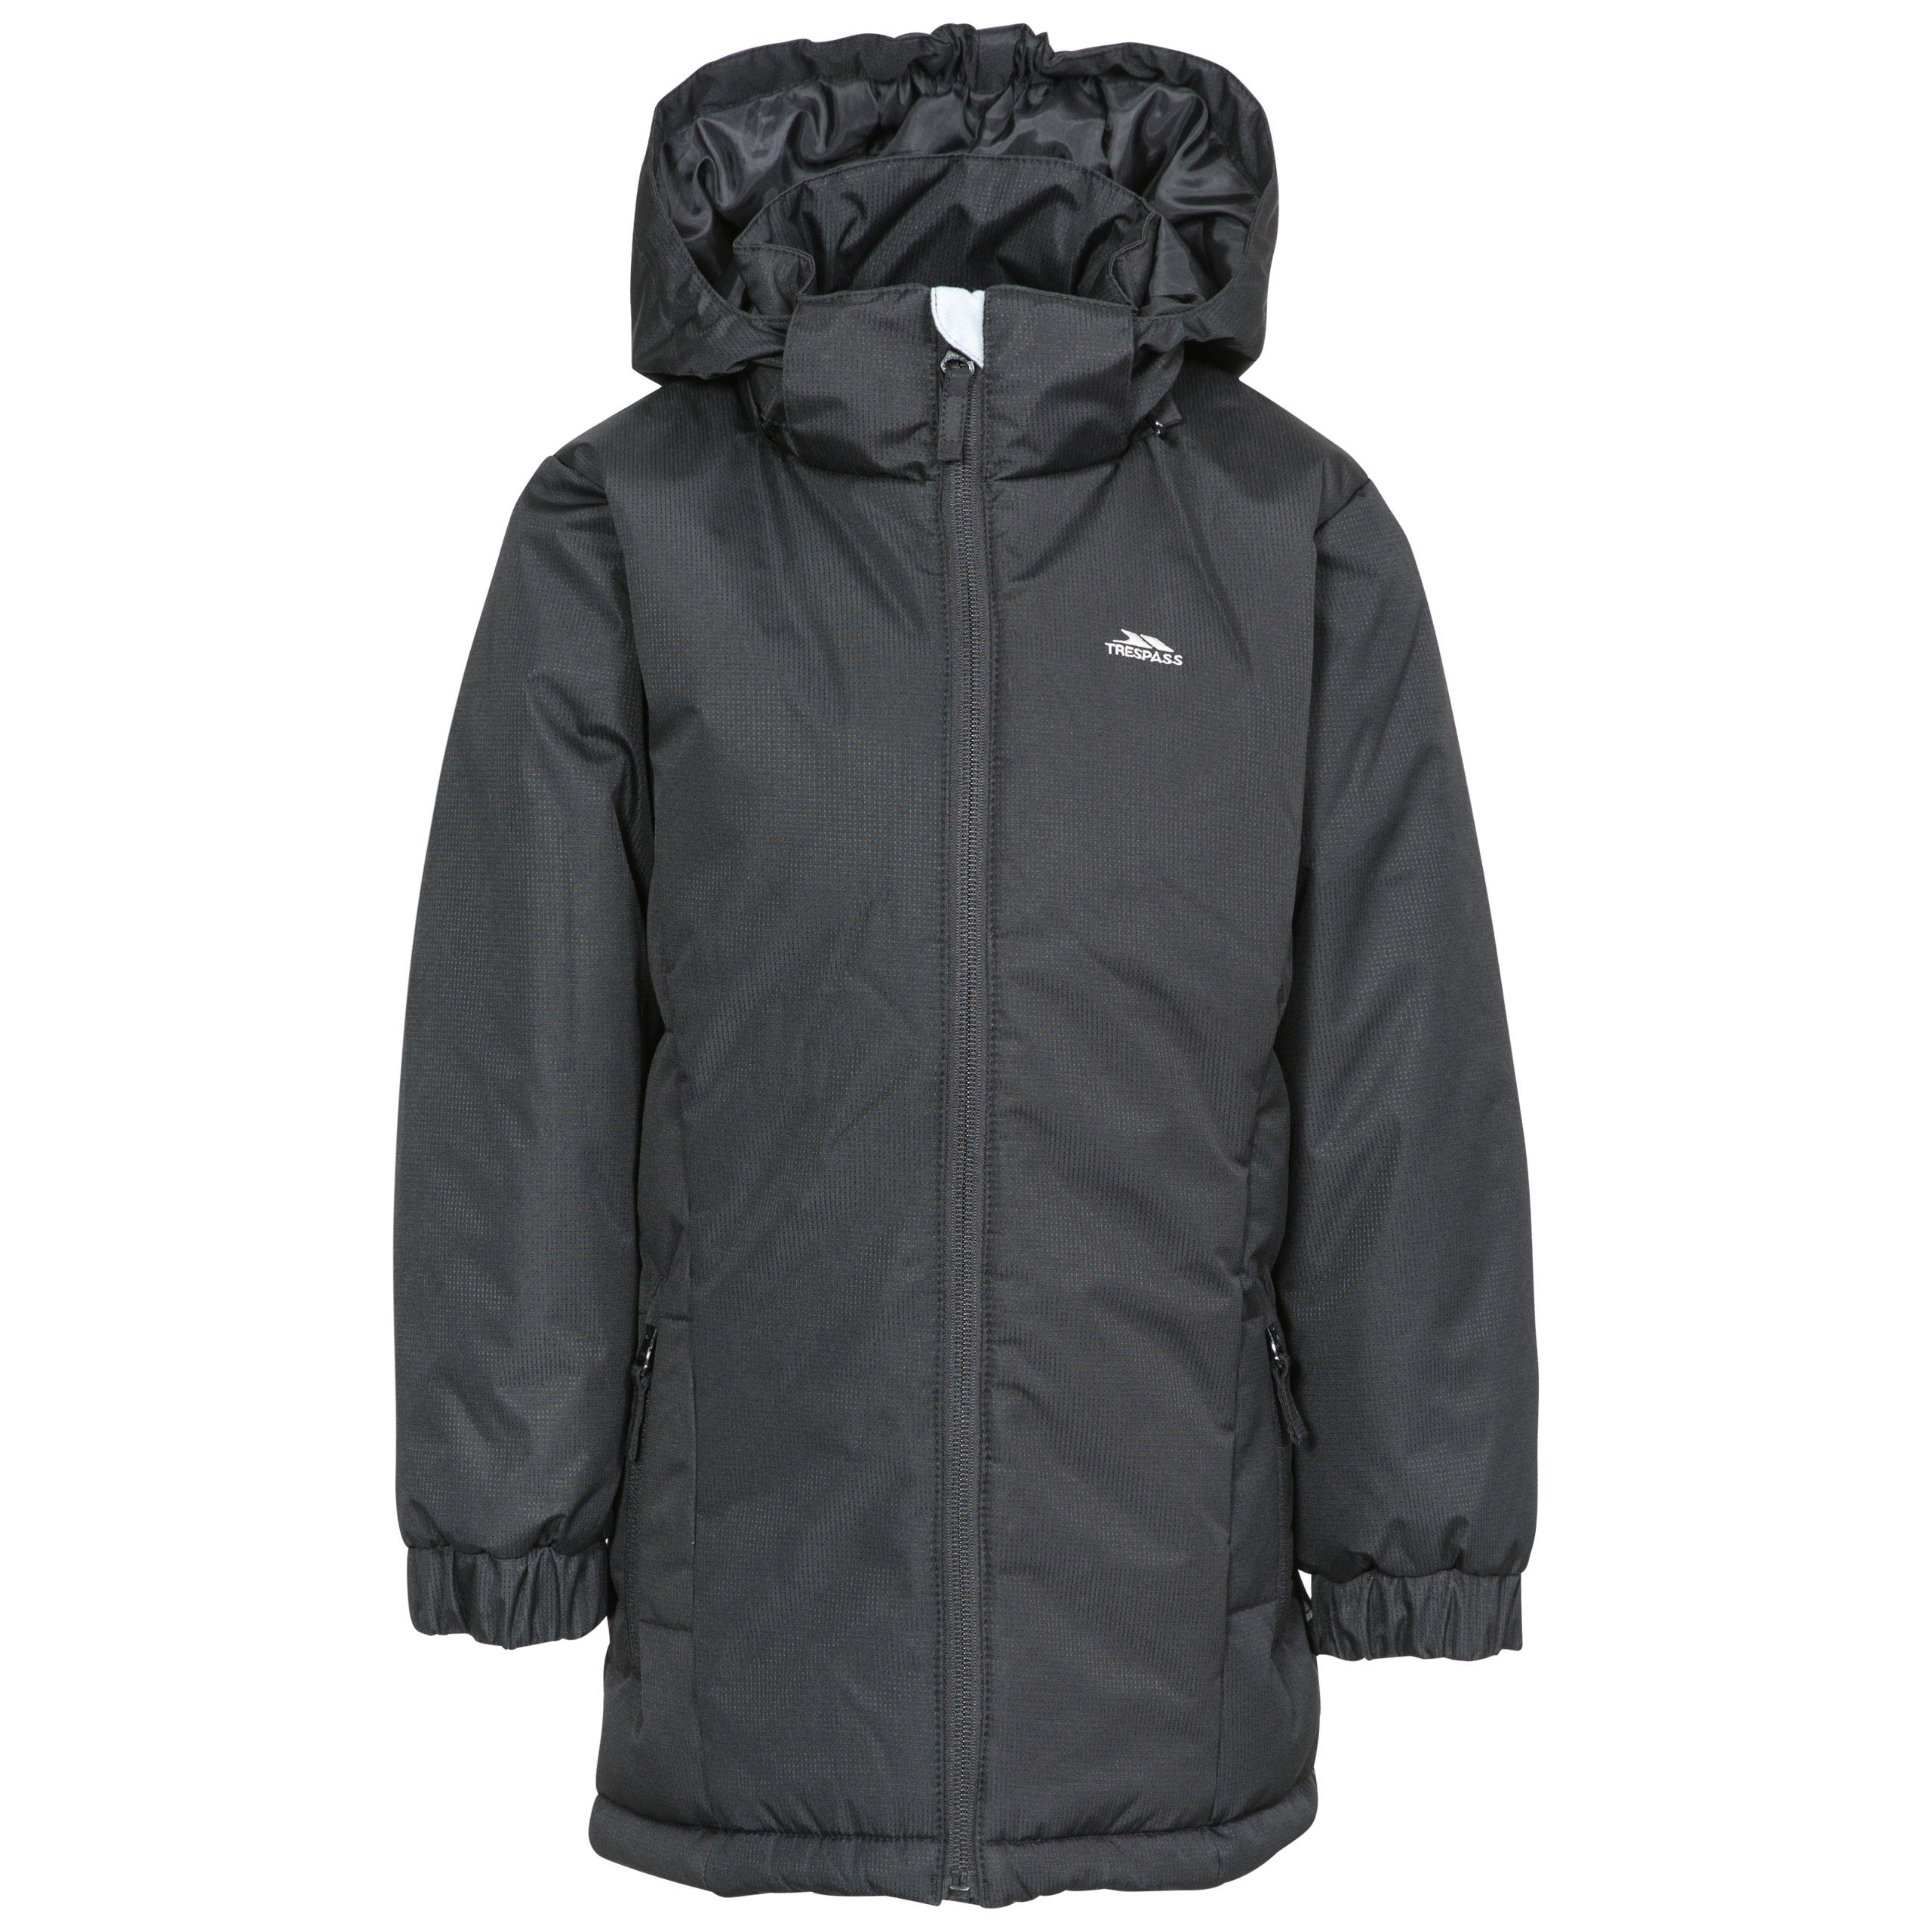 Trespass Primula Girls Padded Jacket with Detachable Hood Water Resistant